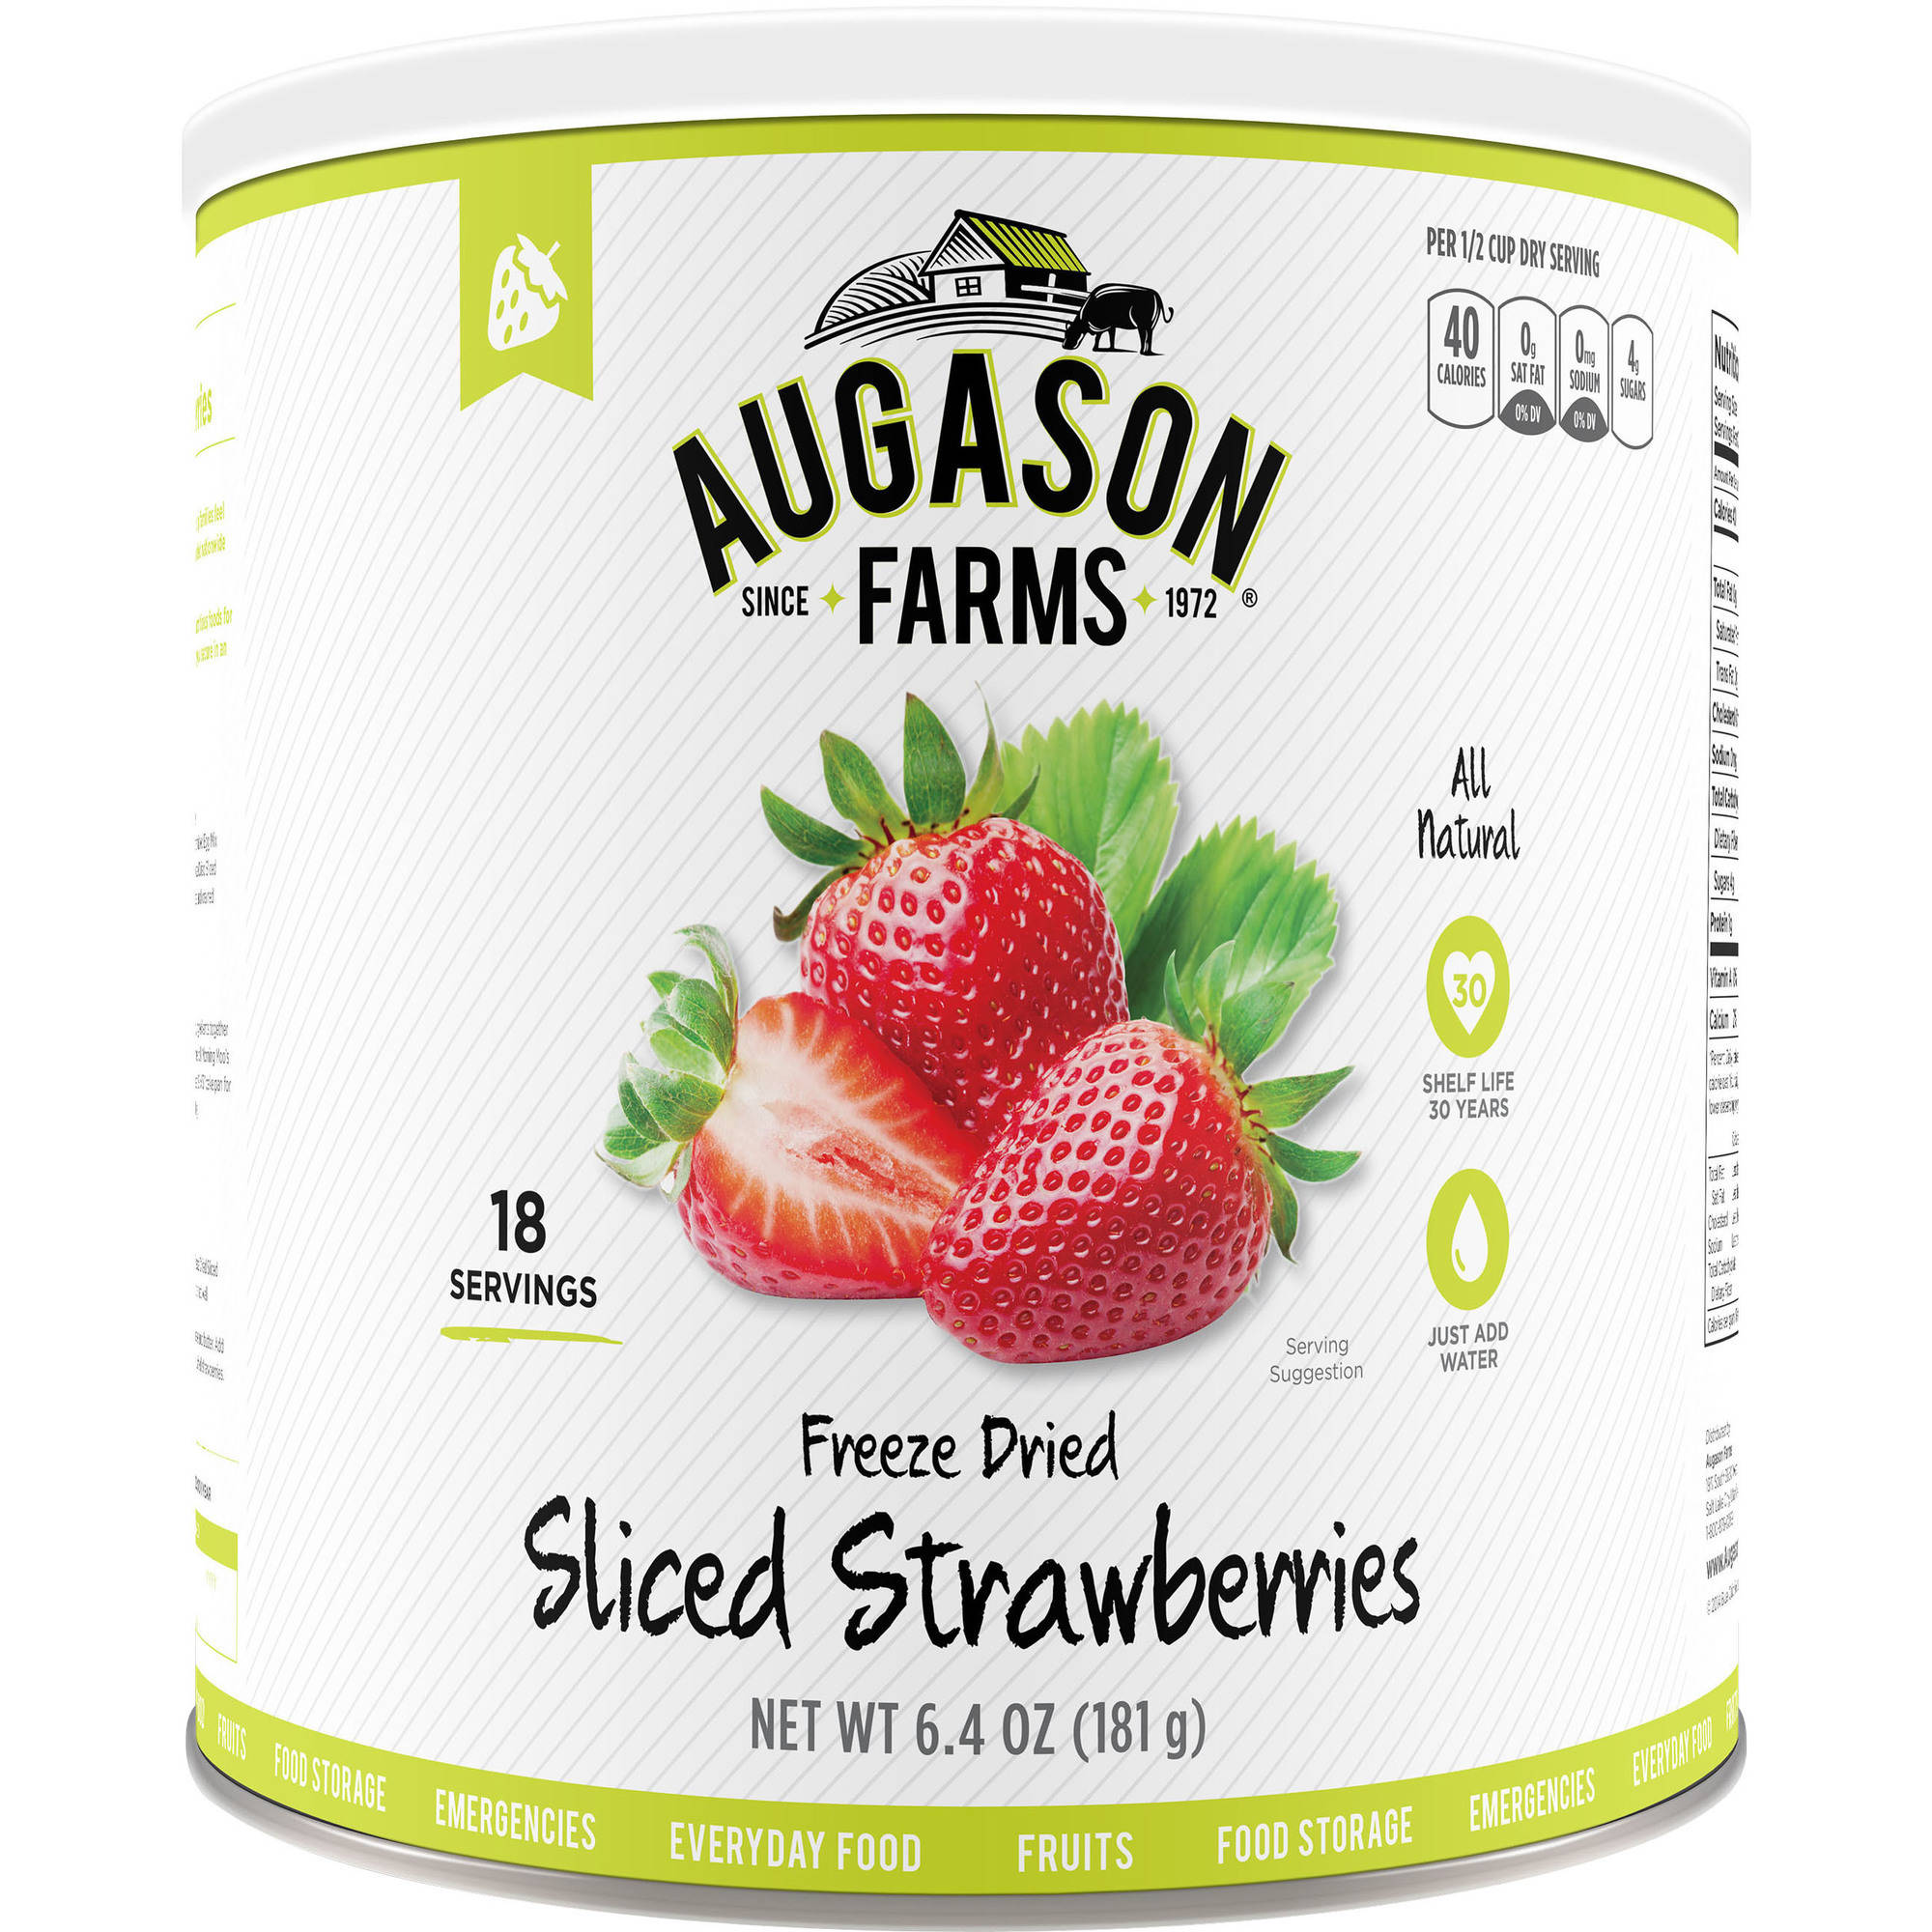 Augason Farms Freeze Dried Sliced Strawberries 6.4 oz #10 Can by Generic